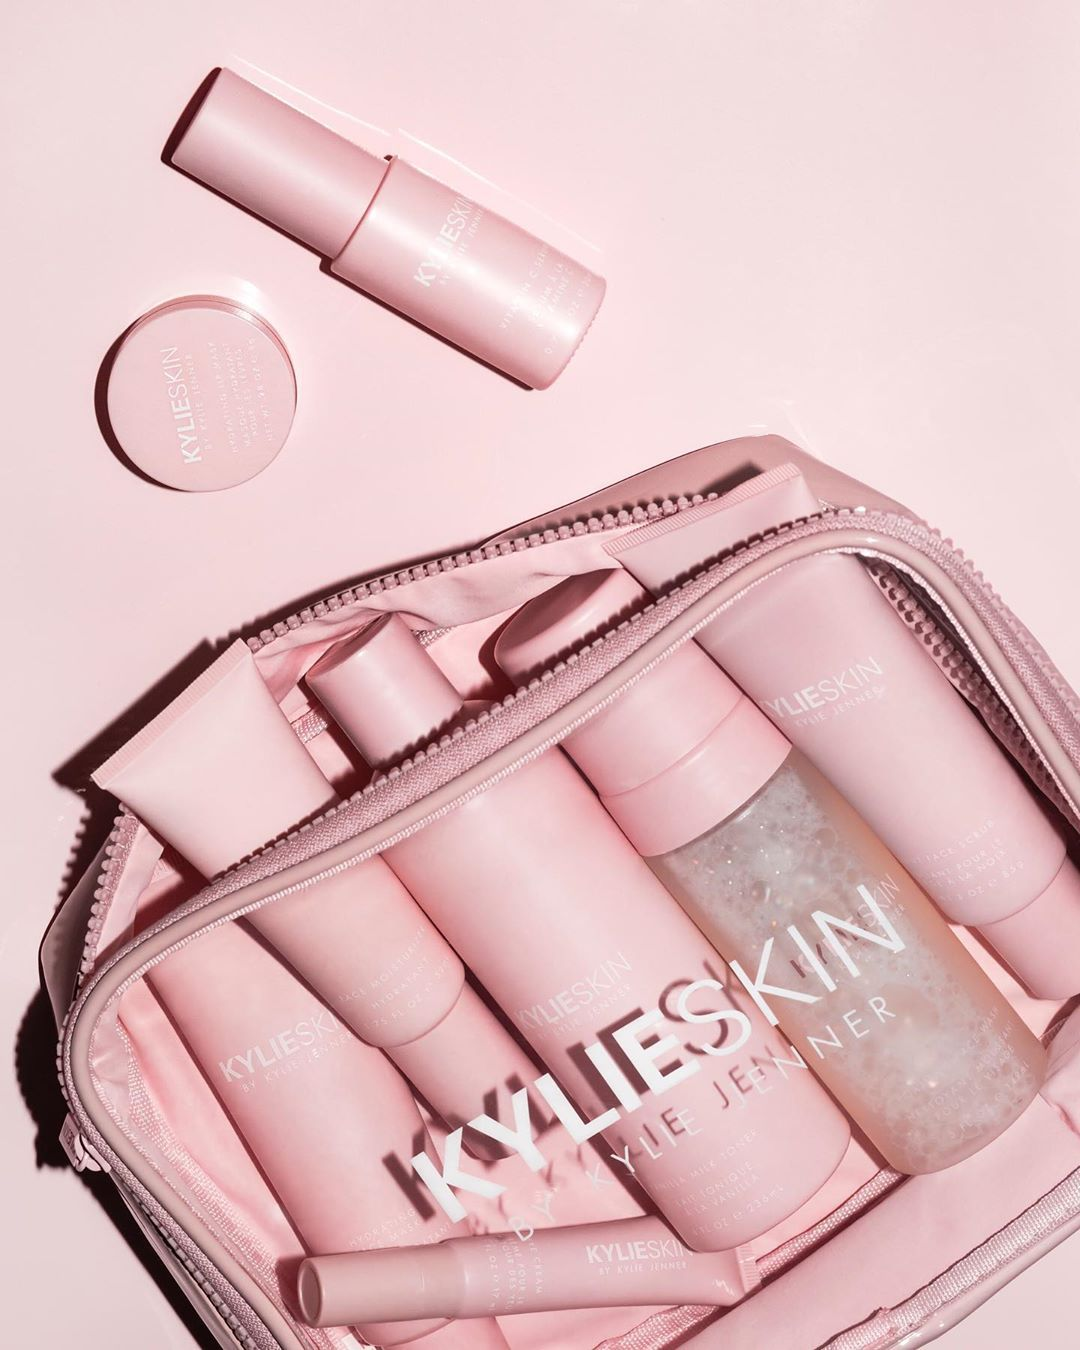 Kylie Skin Sets sold out! 💗 Stay tuned for the next